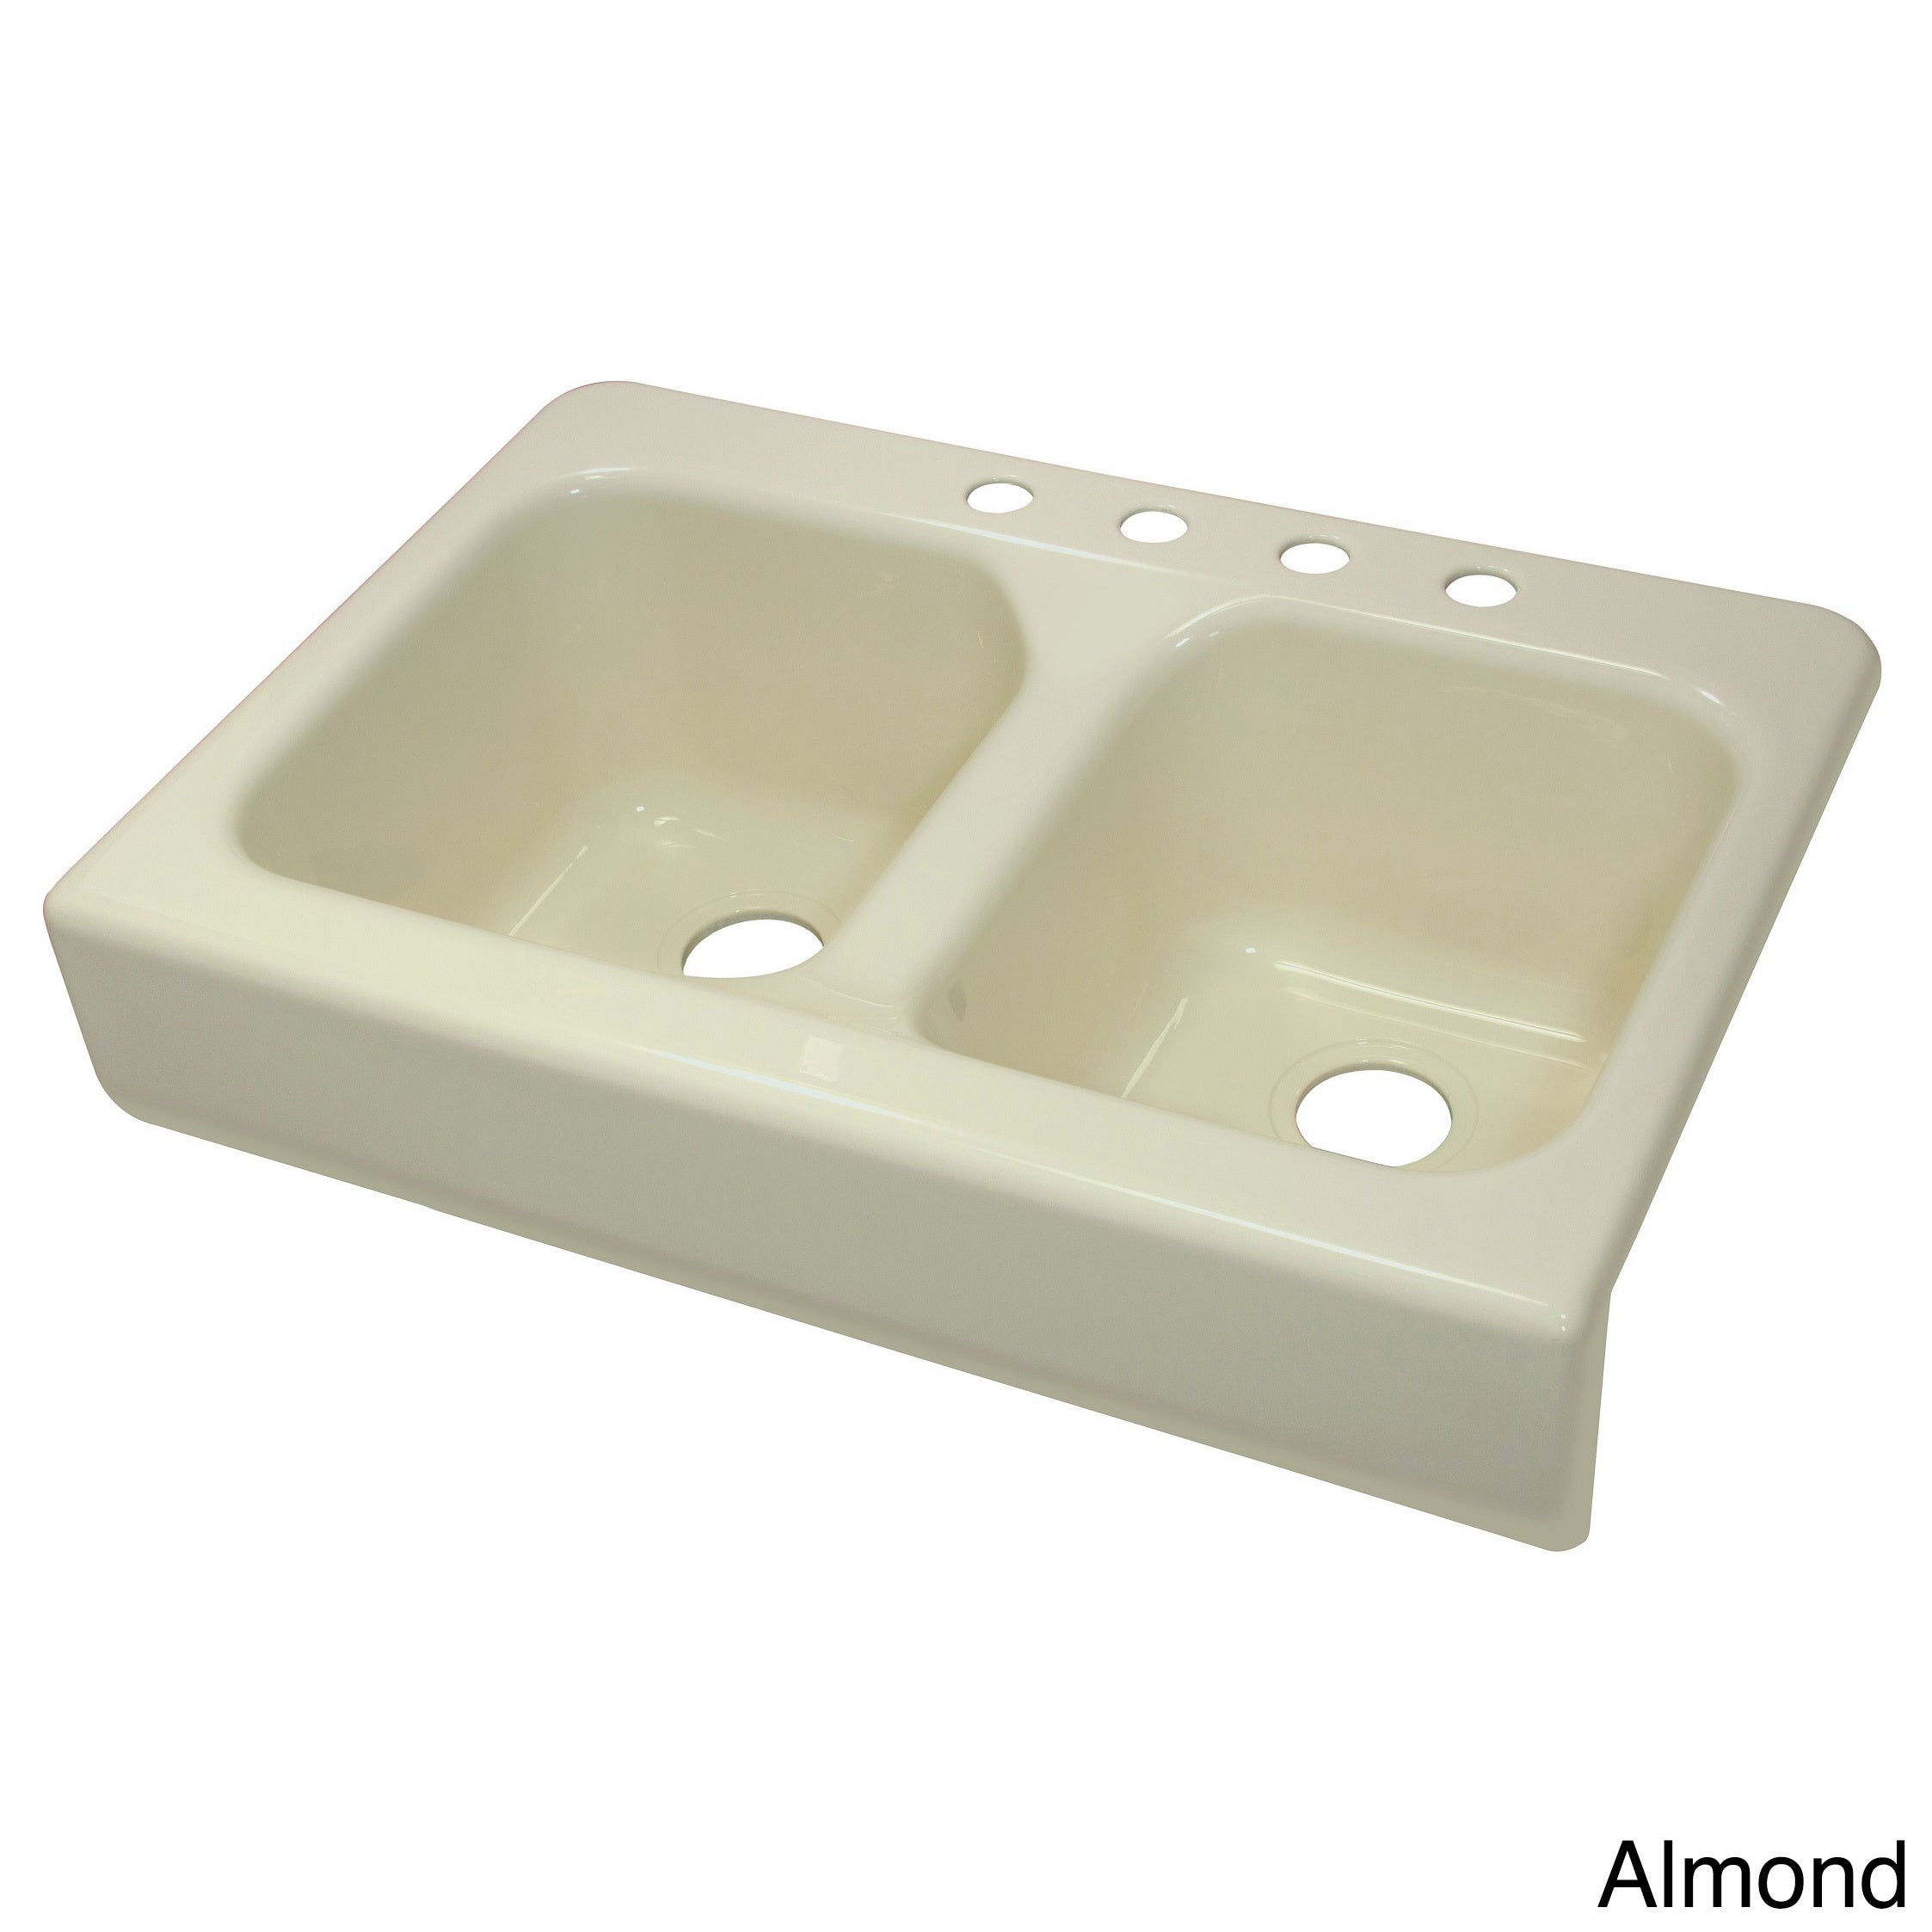 Shop Lyons Deluxe Designer White Apron Front Dual Bowl Acrylic 10 Inch Deep  Kitchen Sink   Free Shipping Today   Overstock.com   9539172